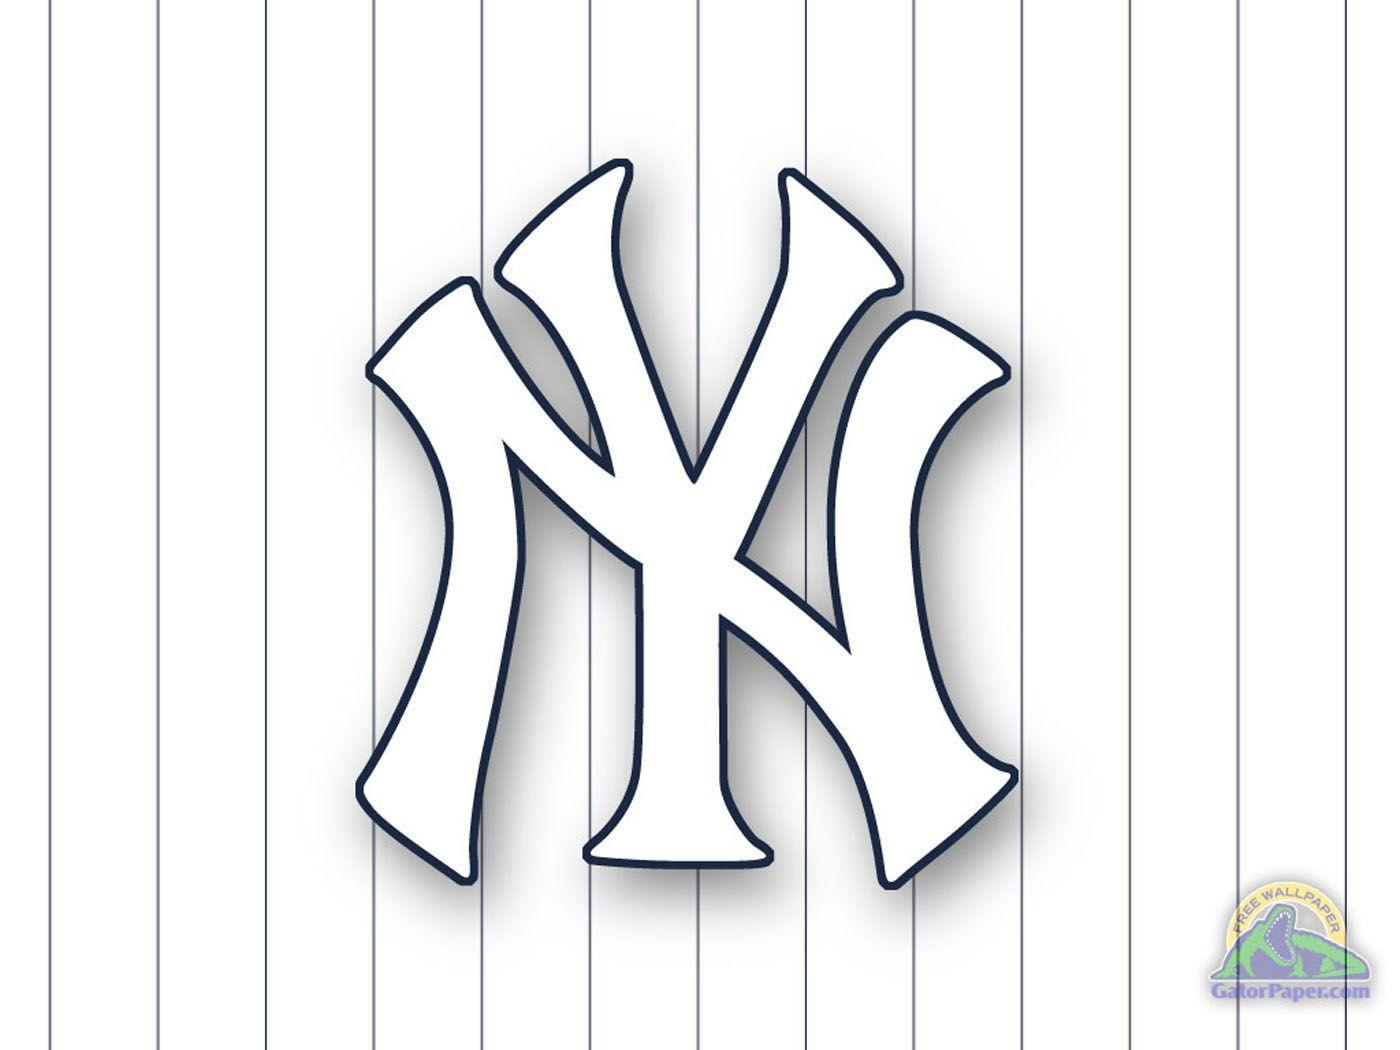 New York Yankees Logo Wallpapers Wallpaper Cave New York Yankees Coloring Pages